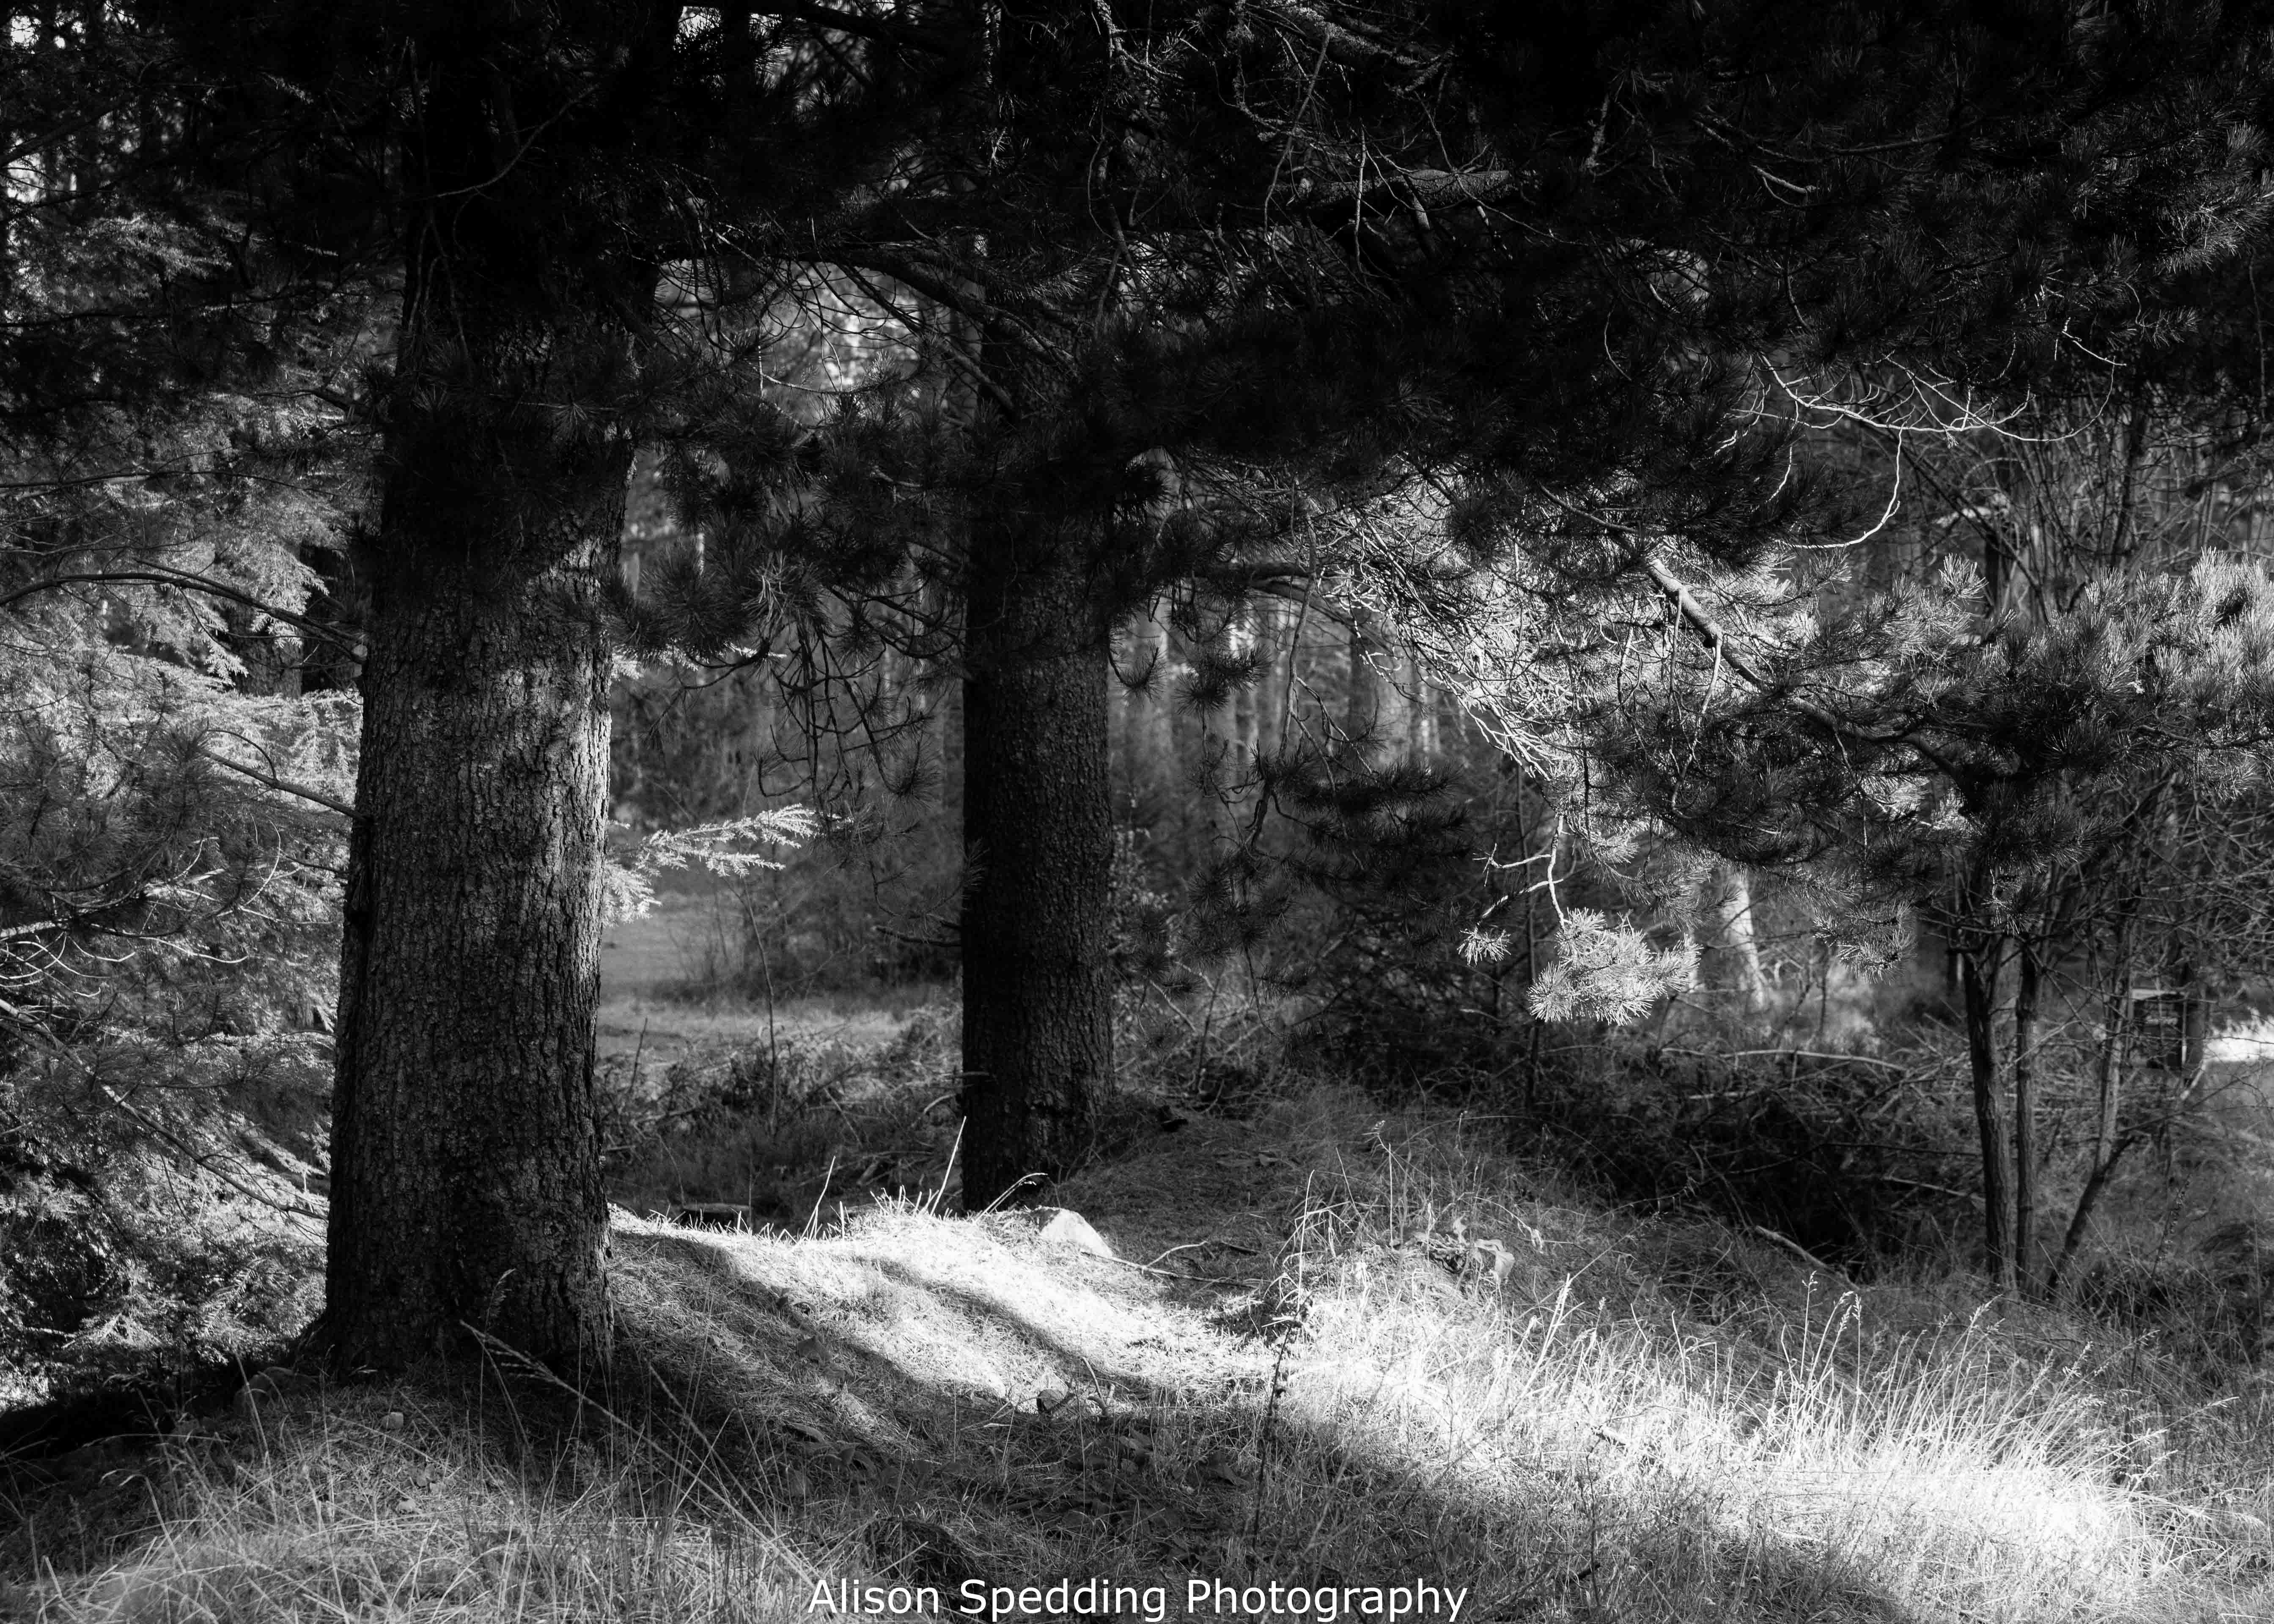 #woodland #blackandwhitephotography #trees #forest